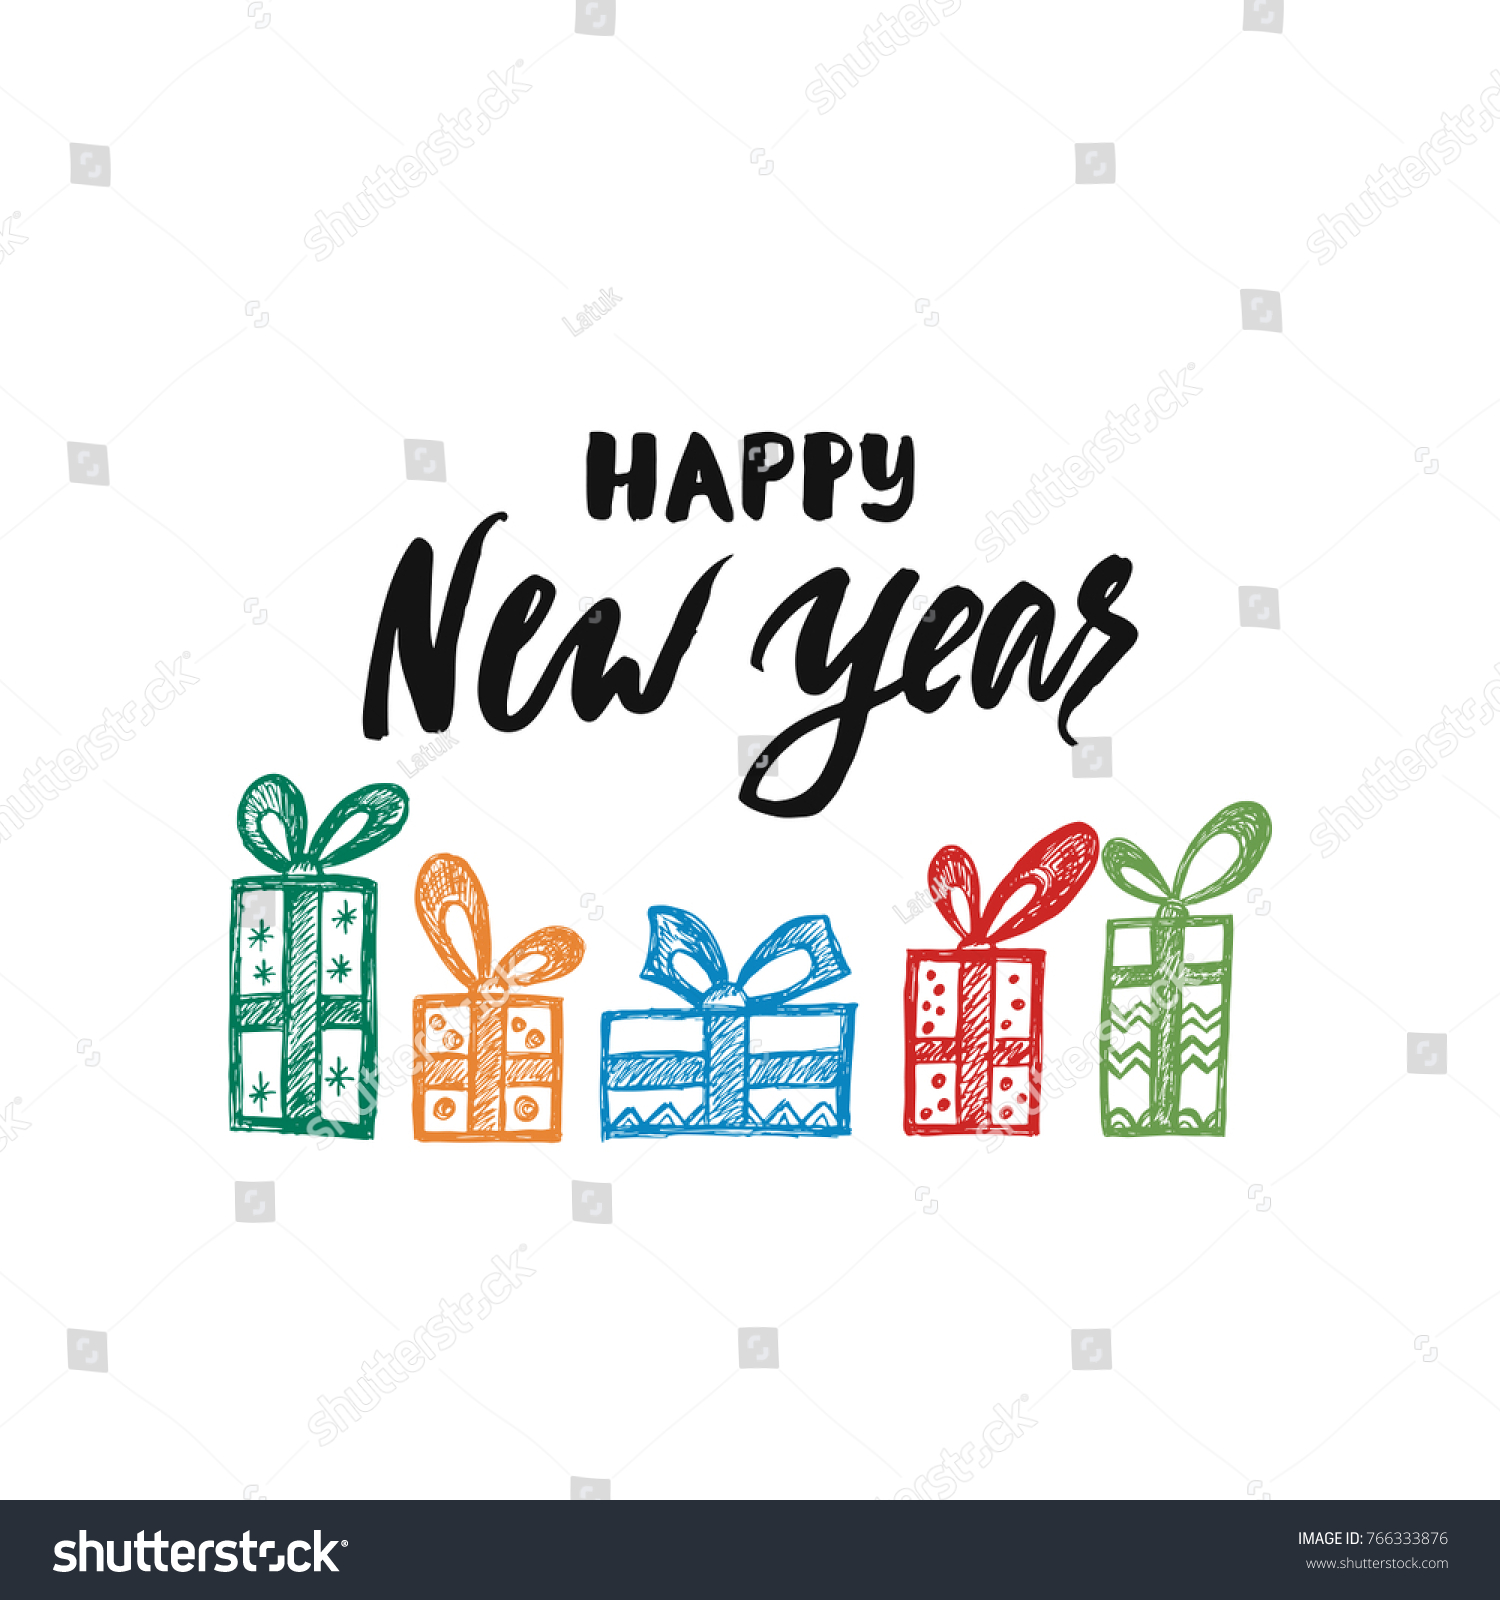 Happy New Year Phrase Holiday Lettering Stock Vector (Royalty Free ...